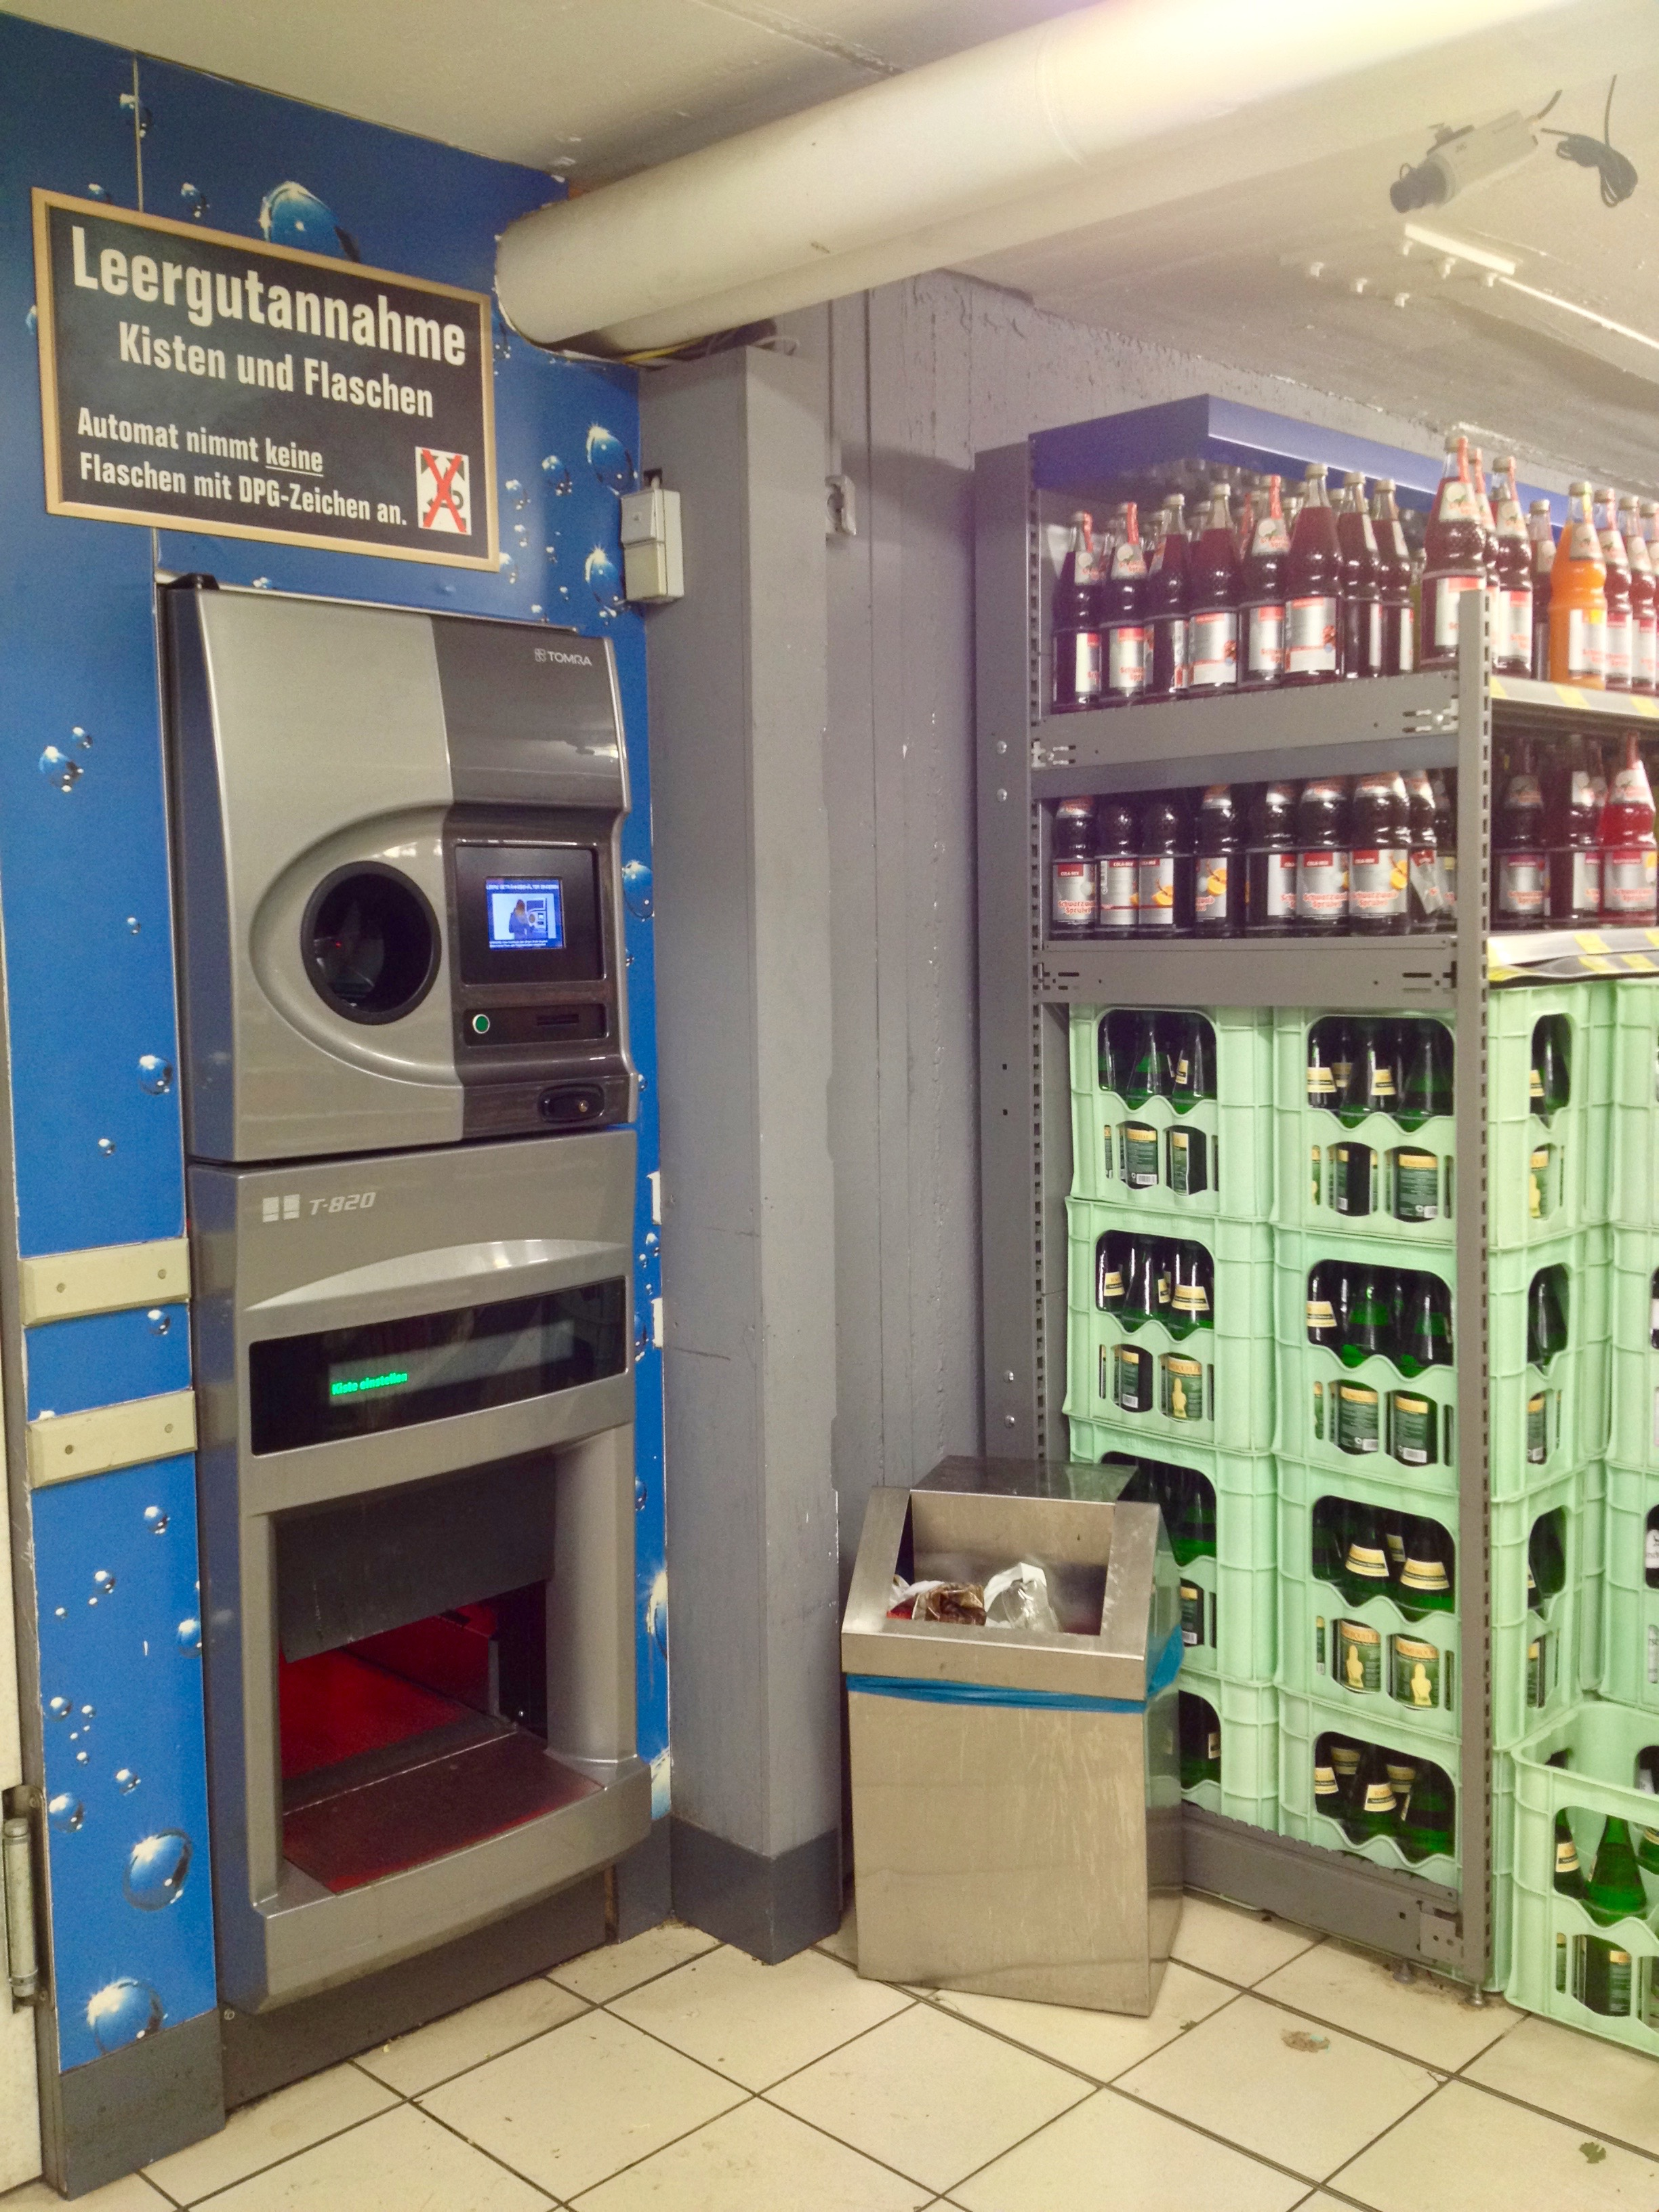 One of the bottle return machines